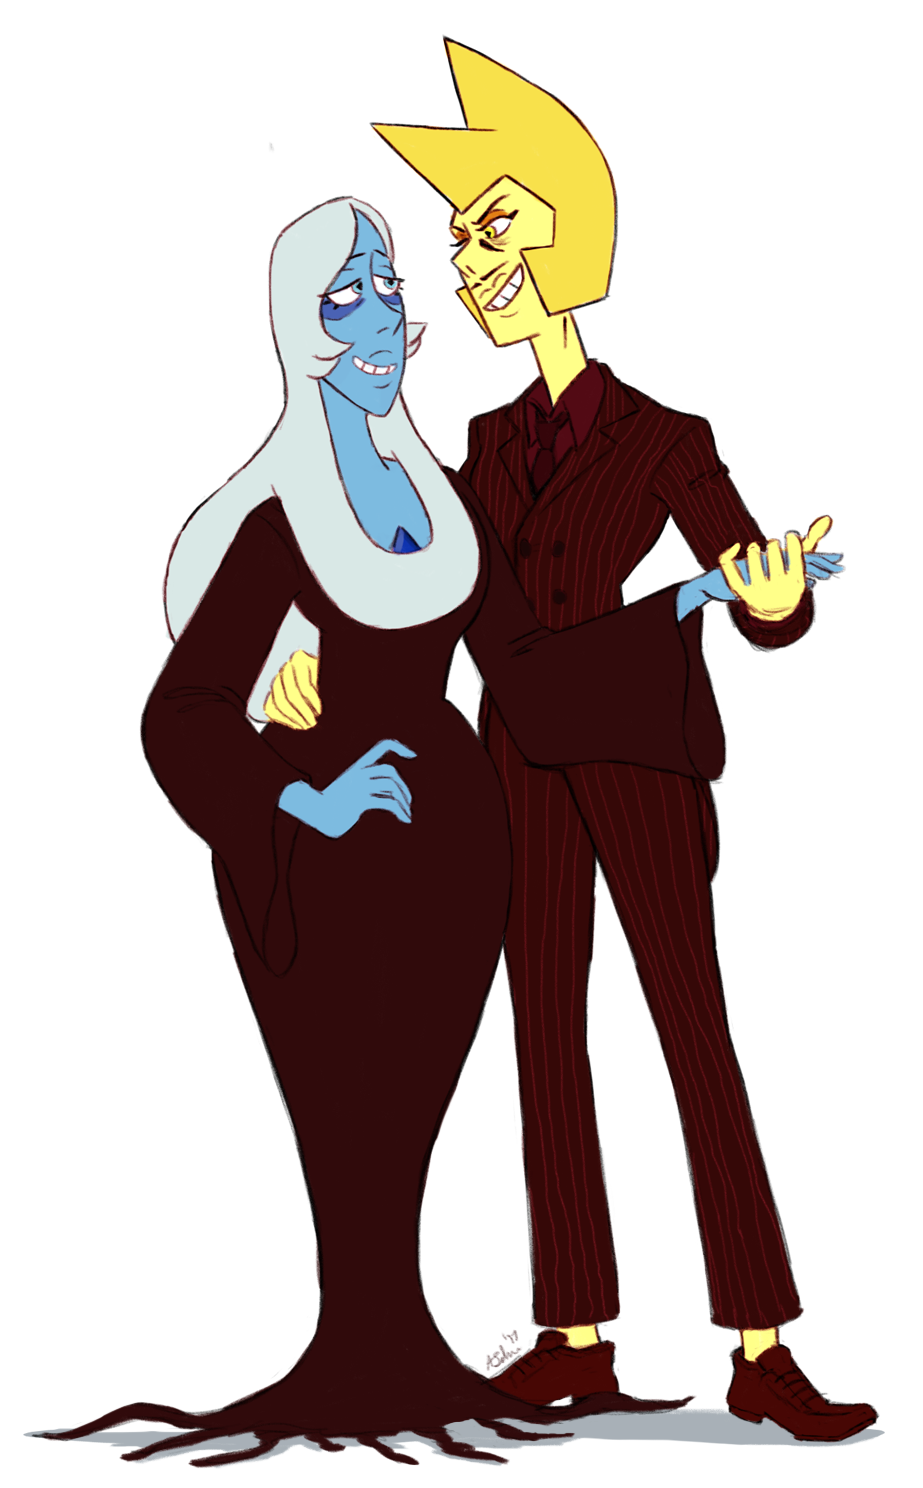 Not inktober but a little something on the side, Yellow and Blue as Gomez and Morticia Addams. Blue's dress had always given me Morticia vibes.